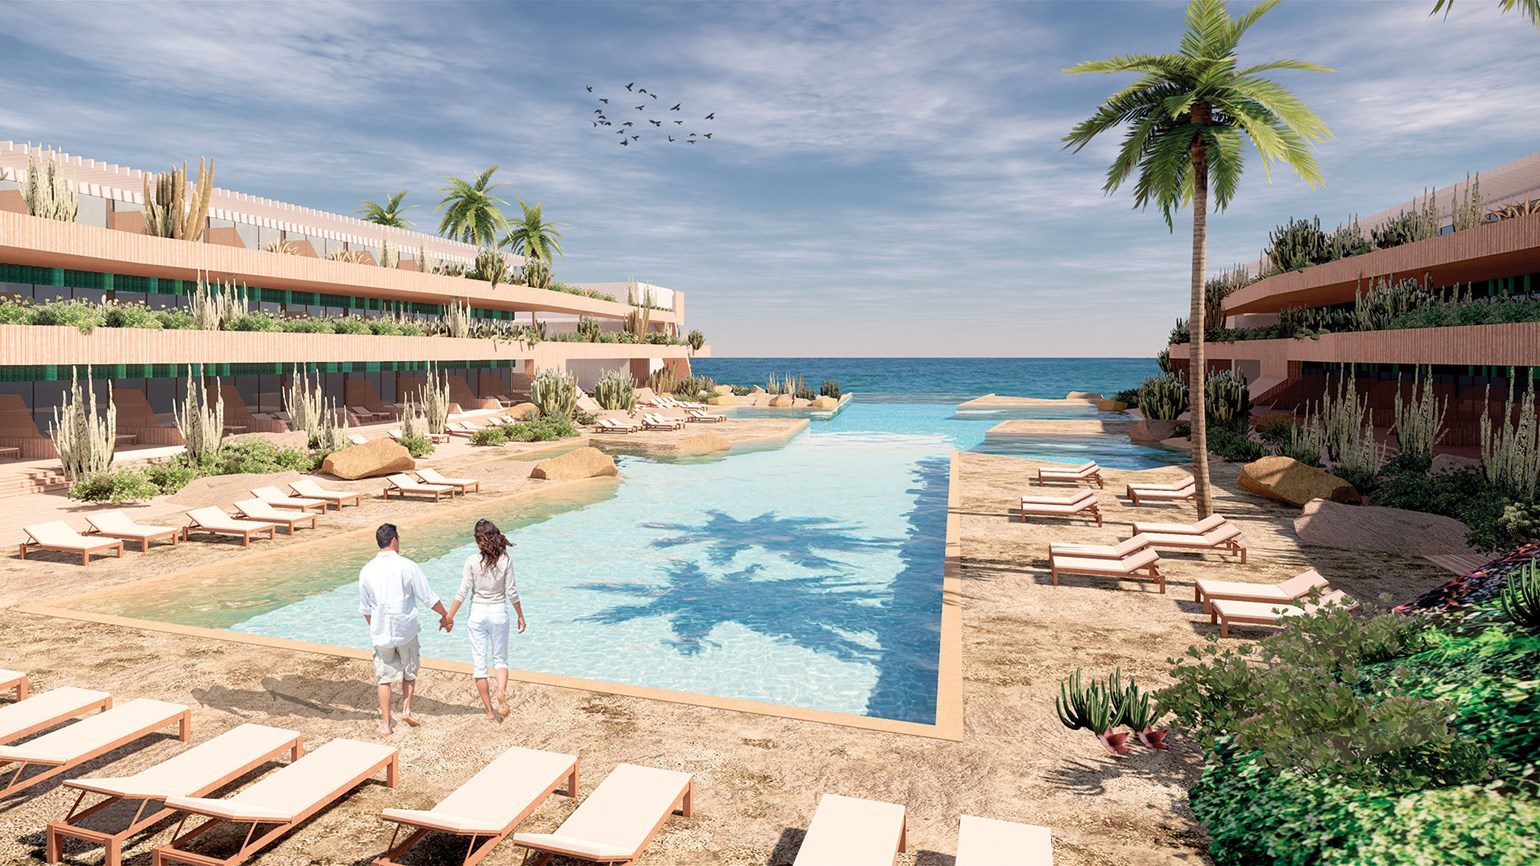 Secrets resort coming to Aruba's Baby Beach